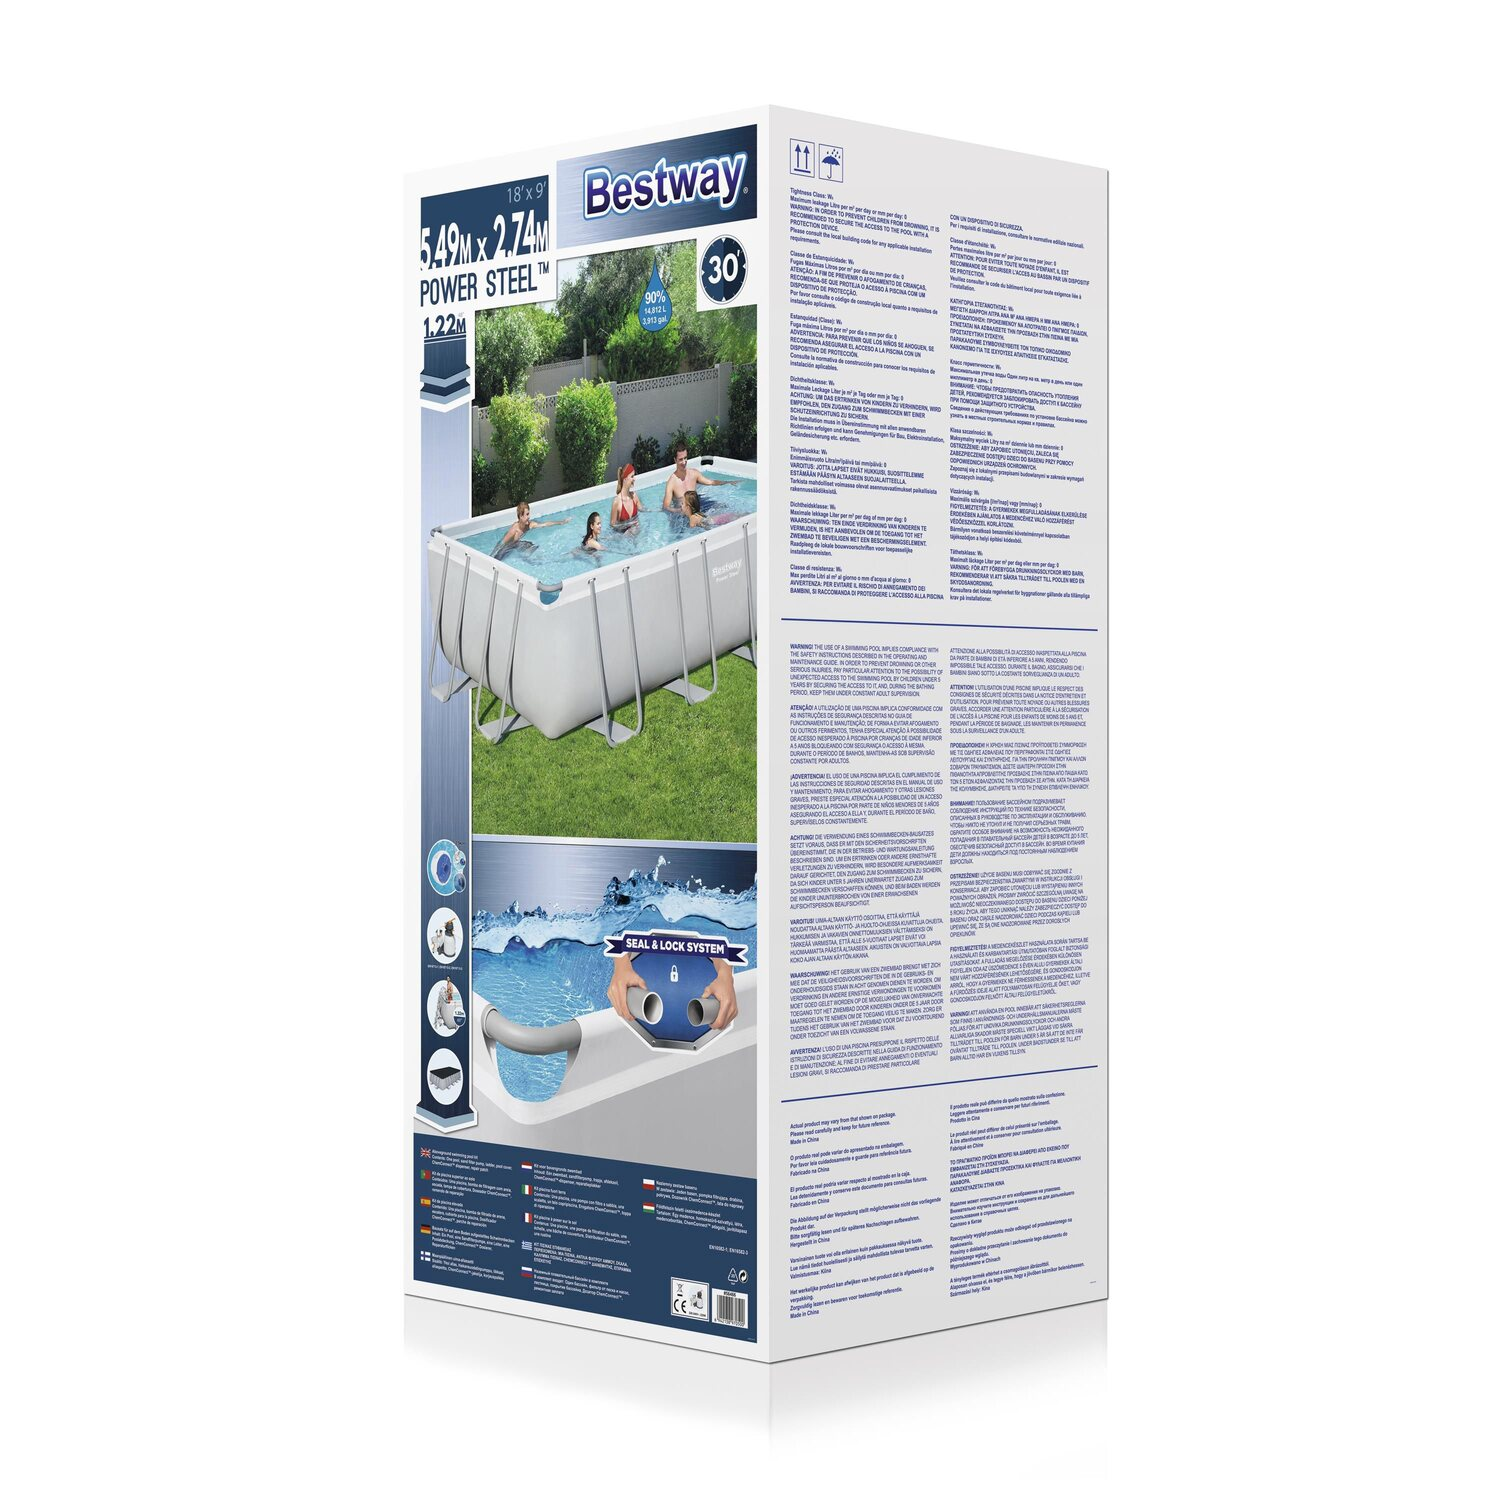 Bestway stahlrahmen pool set 549 cm x 274 cm x 122 cm for Bestway pool obi